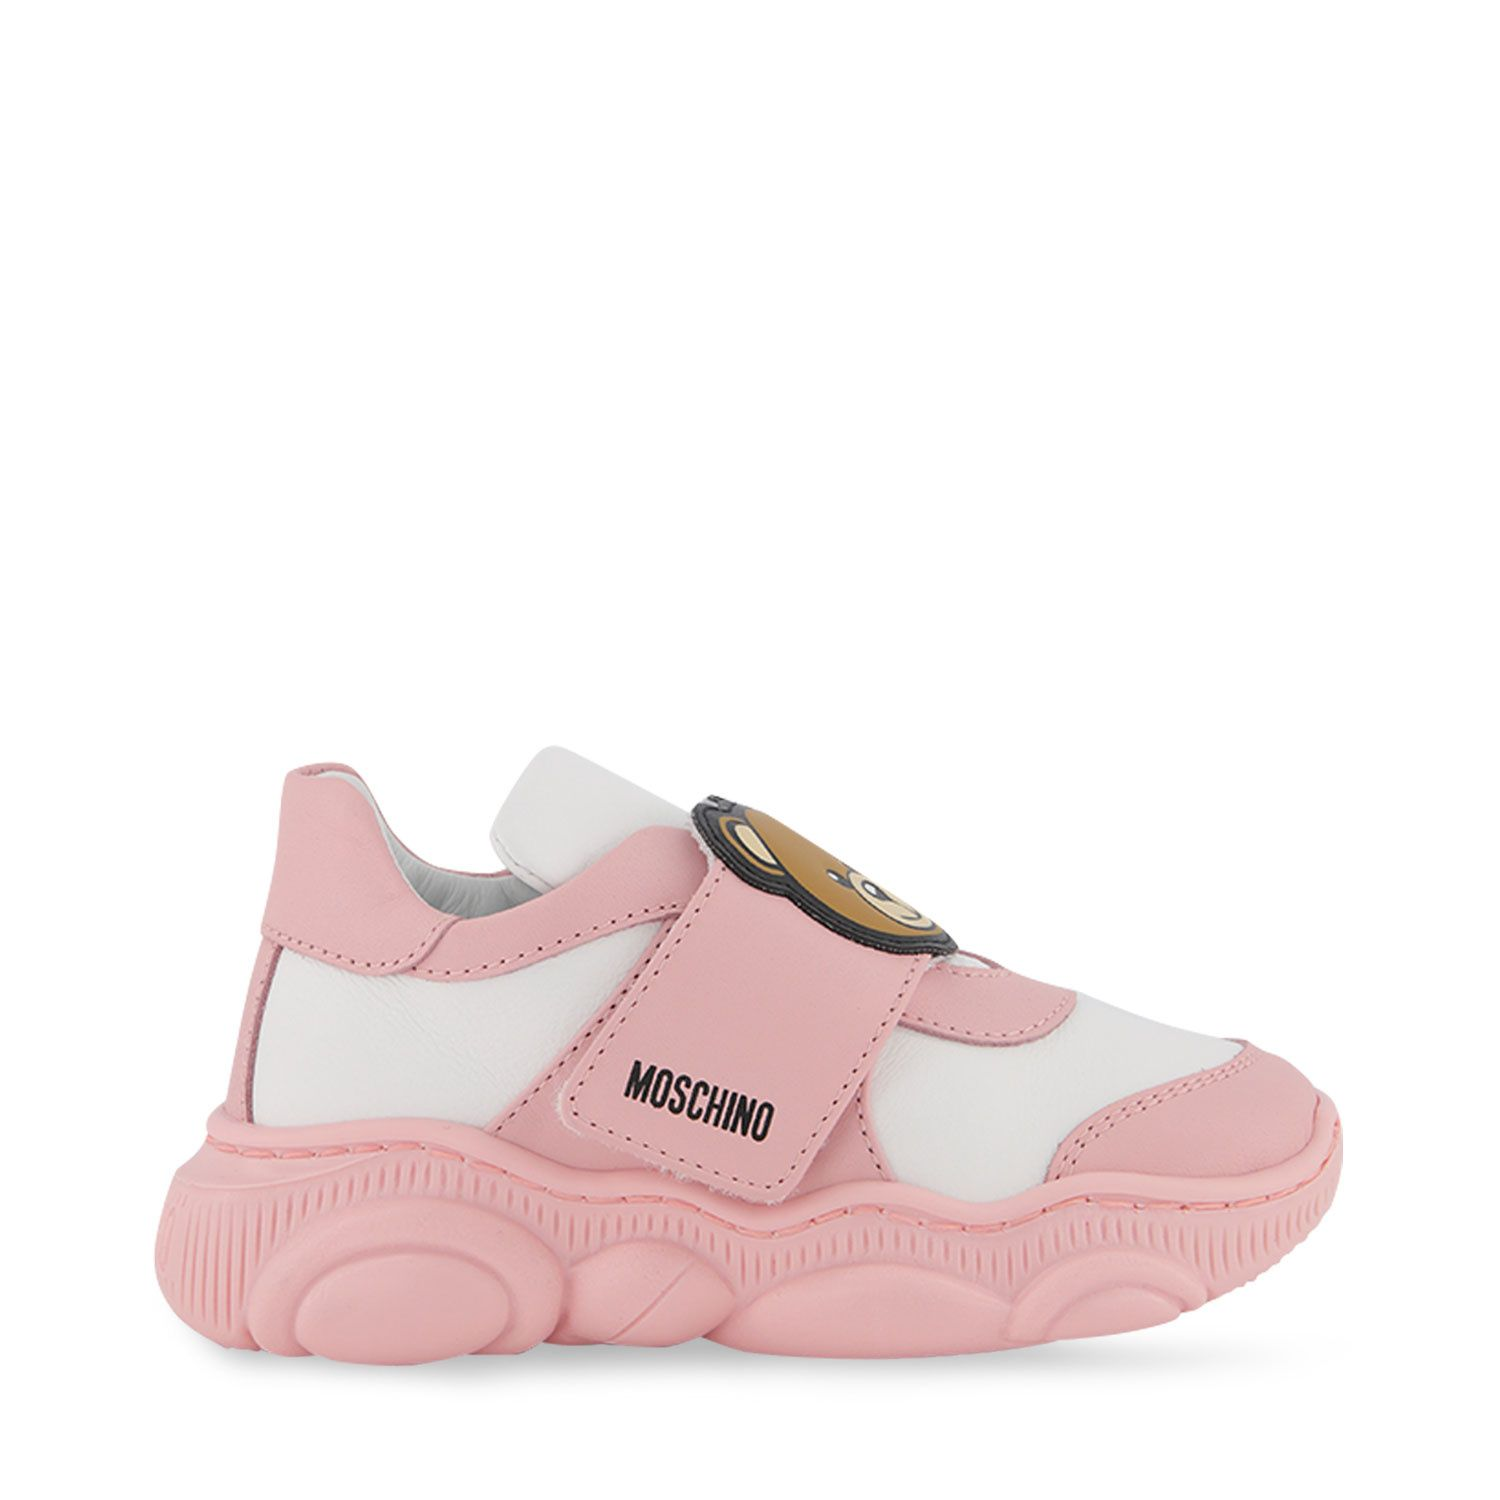 Picture of Moschino 68783 kids sneakers light pink